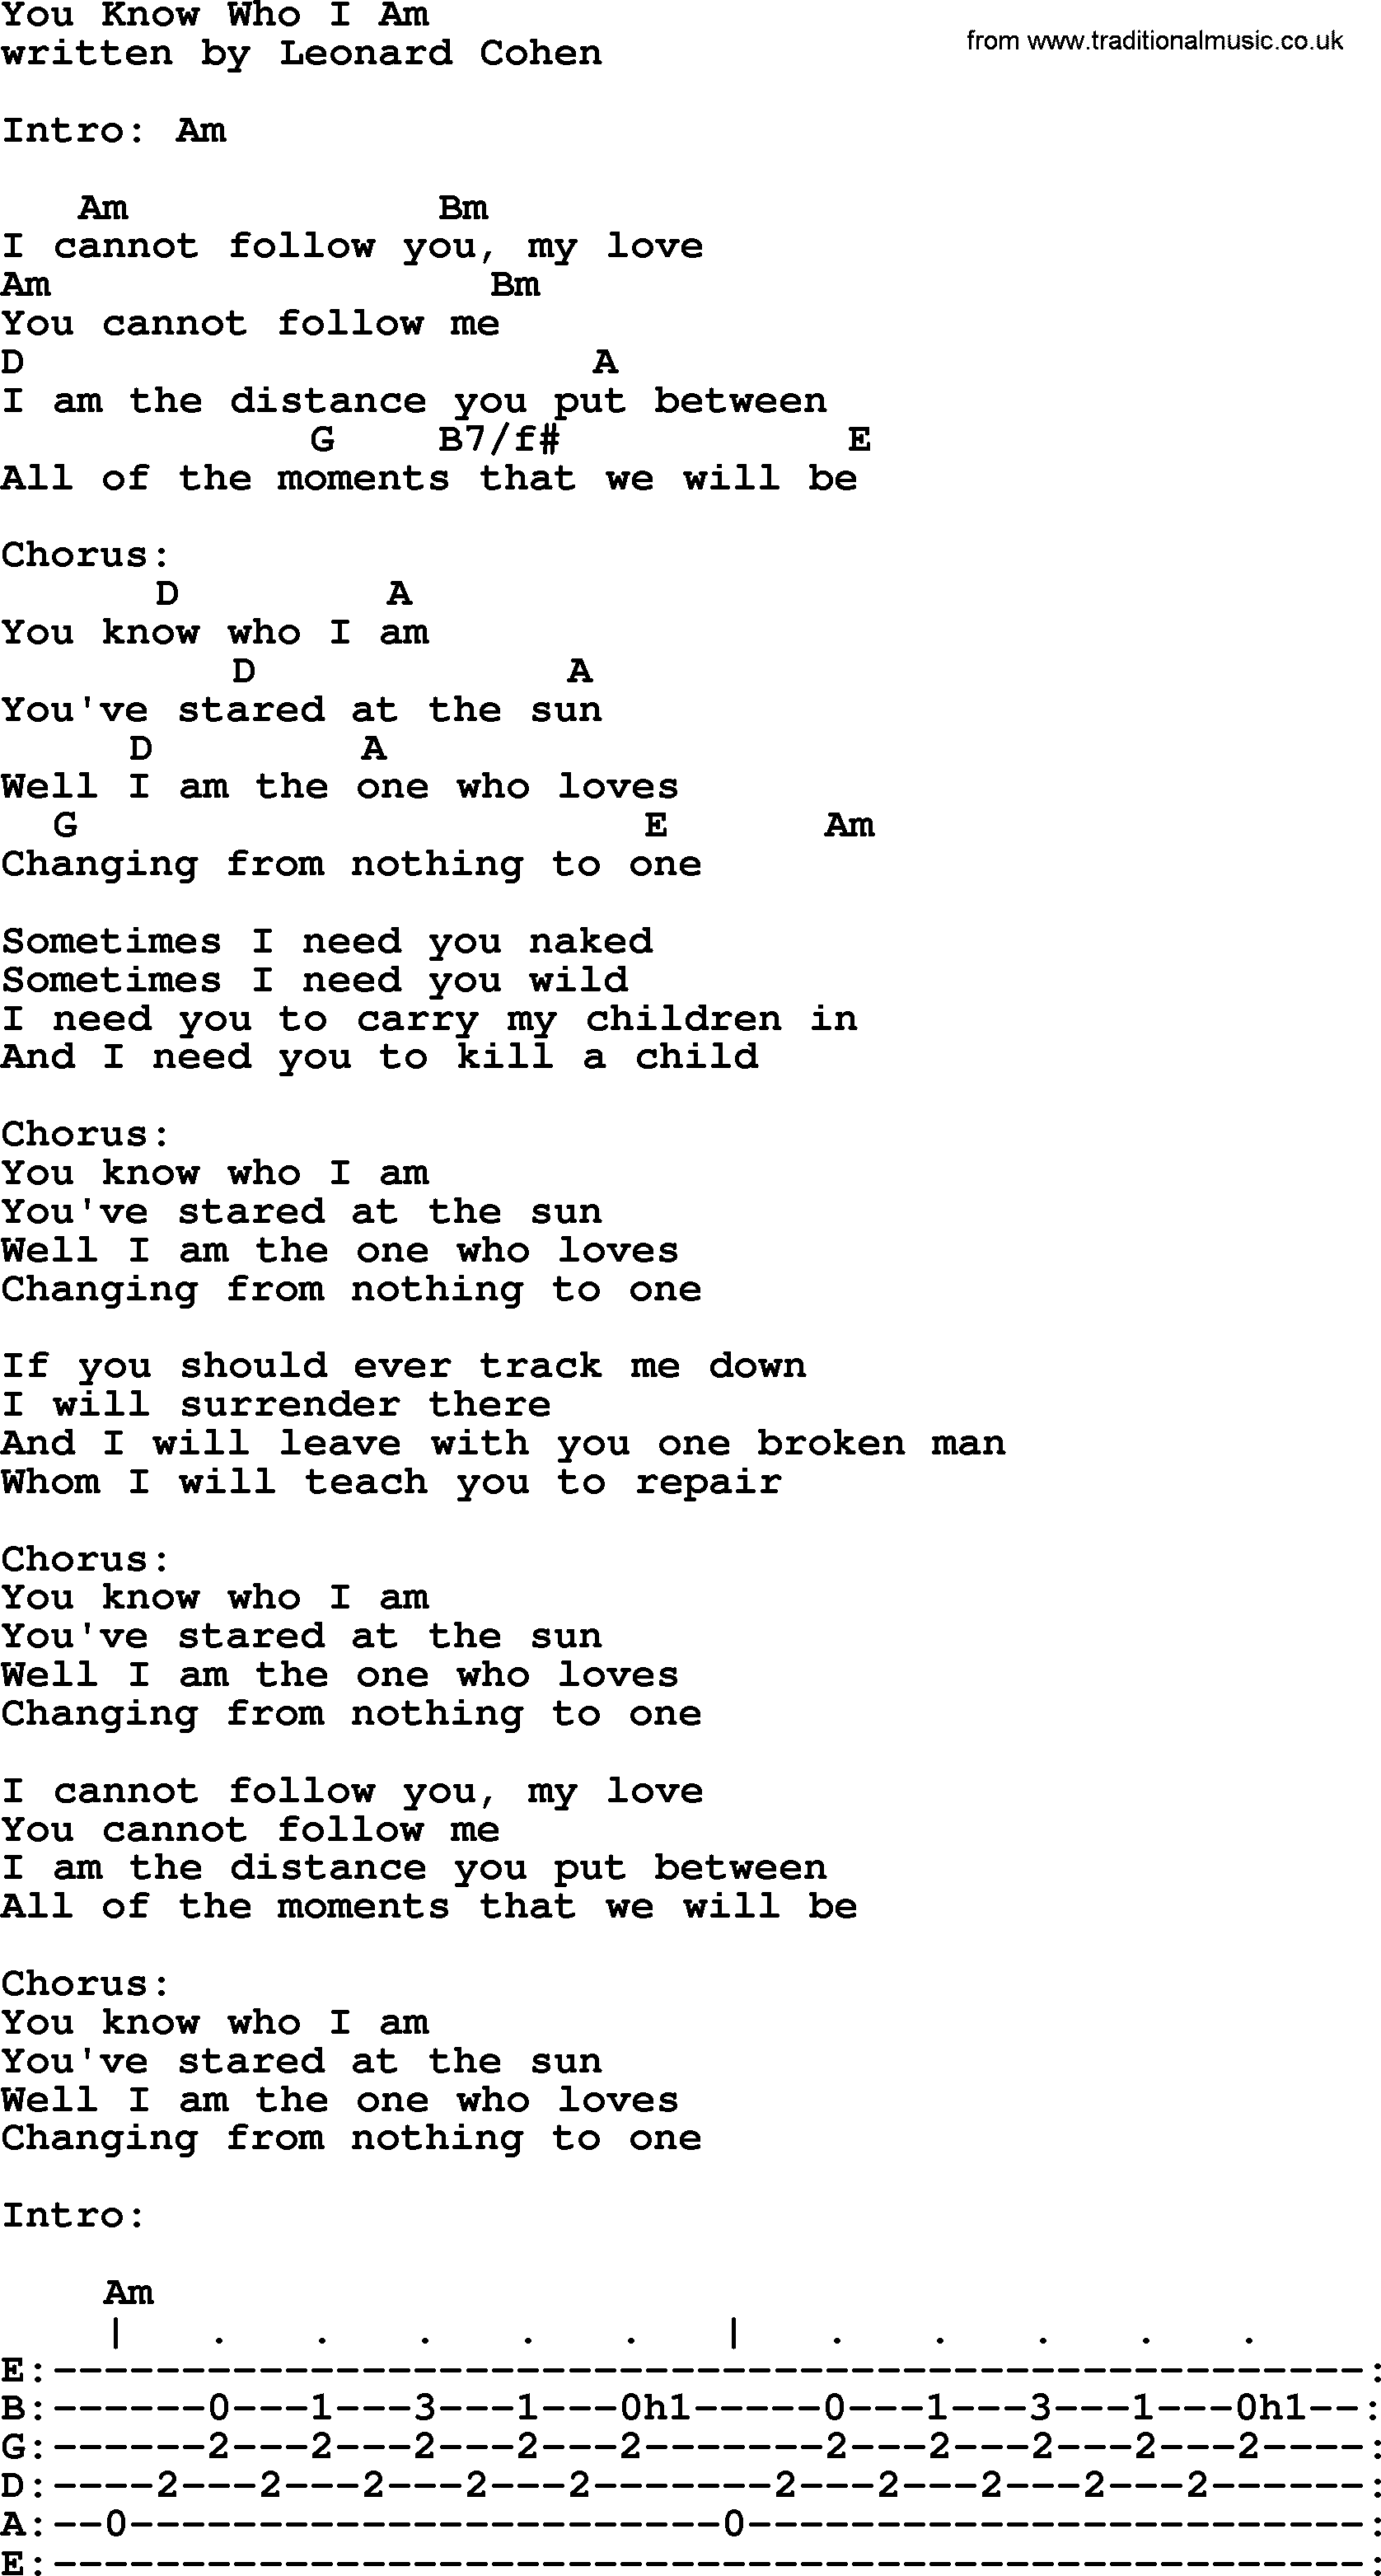 Leonard Cohen Song You Know Who I Am Lyrics And Chords